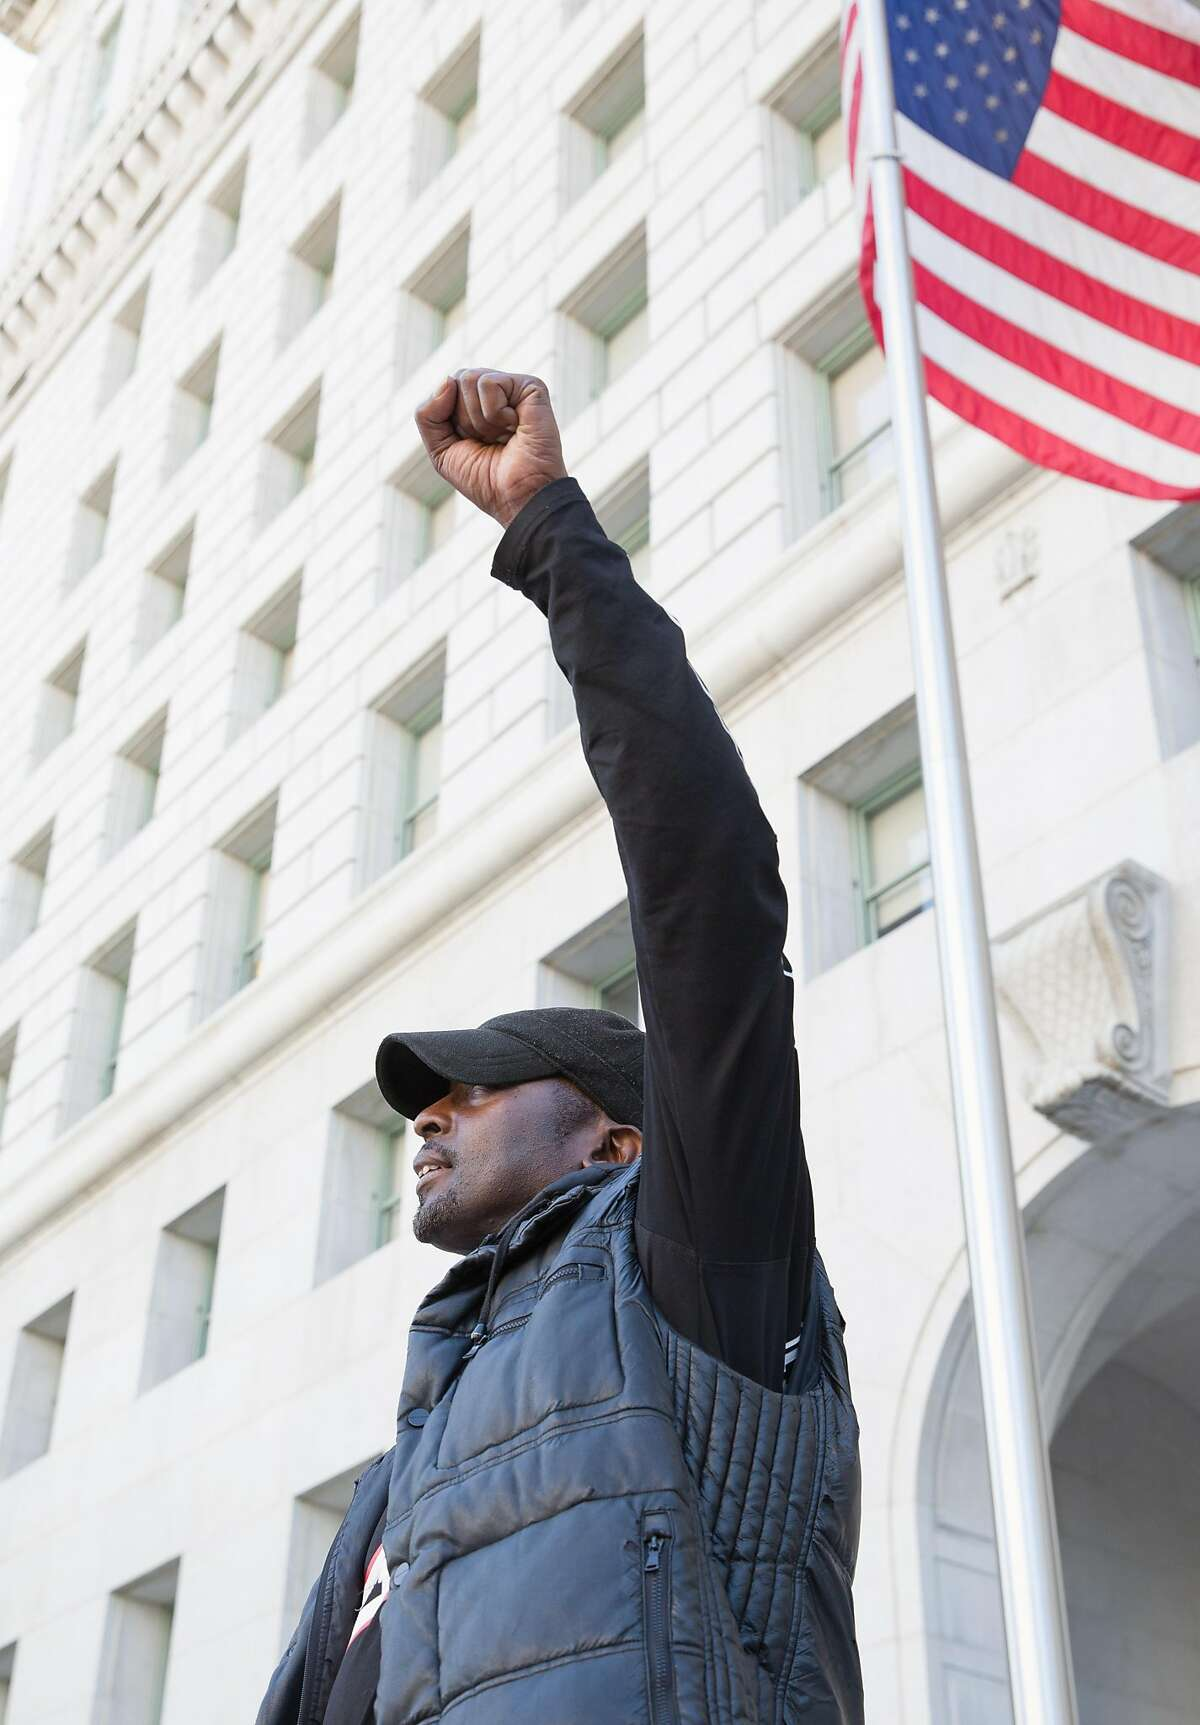 LOS ANGELES, CA - JUNE 12, 2019: Quintus Moore participates in a weekly protest outside the L.A. Hall of Justice, organized by LA Black Lives Matter, and is an activist for laws that would make it more difficult for law enforcement officers to resort to deadly force.